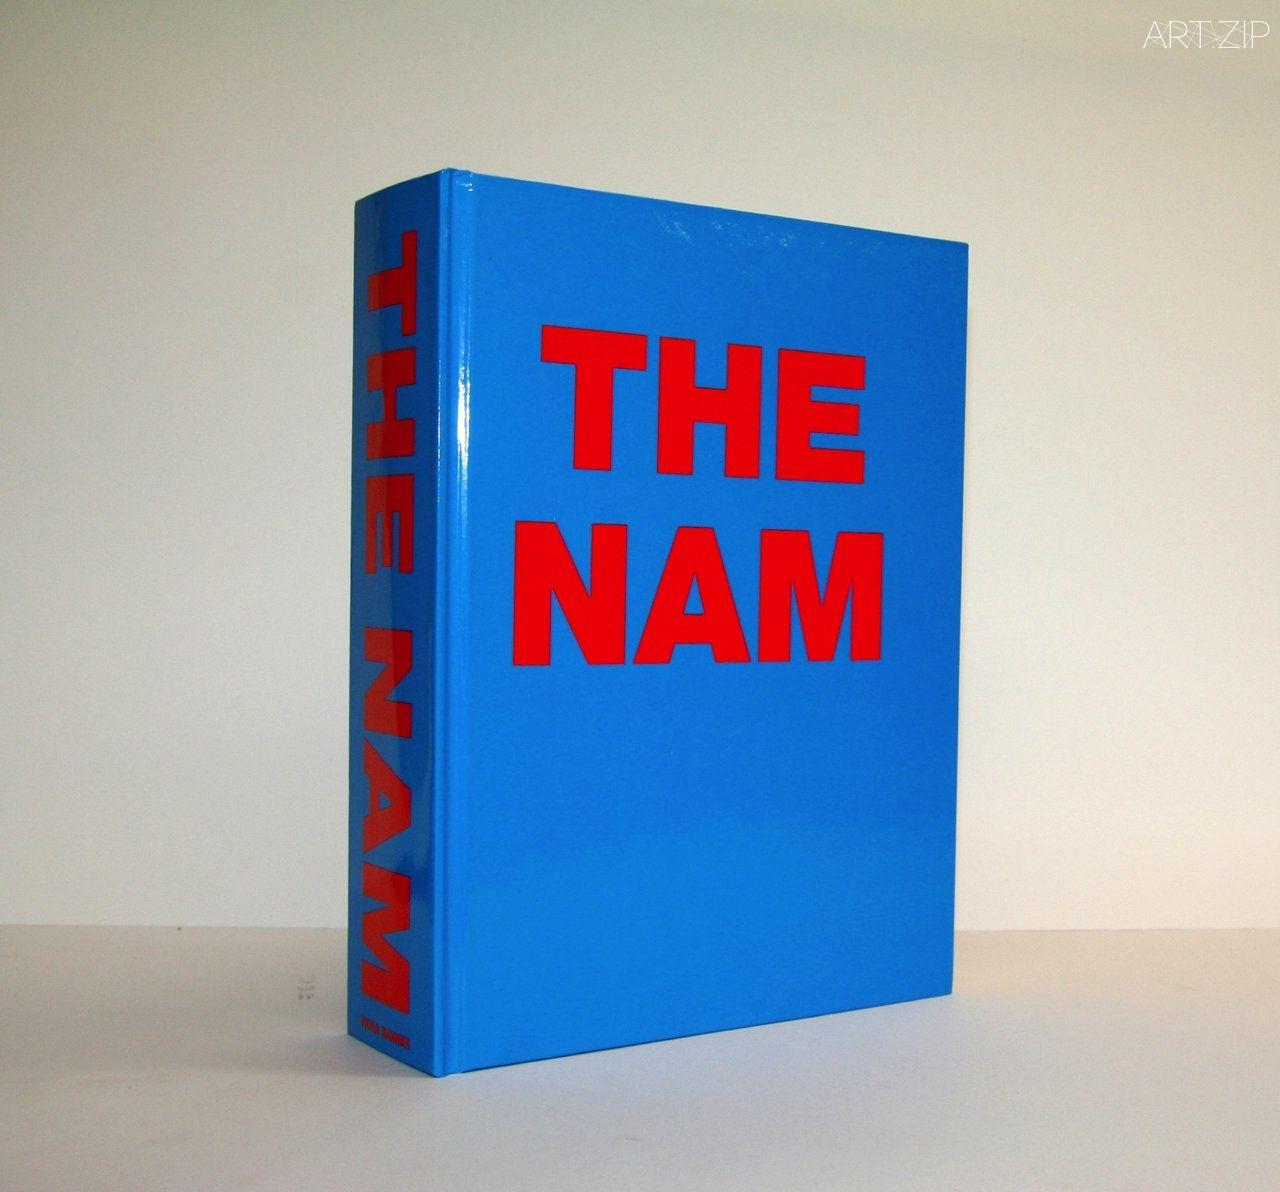 Fiona Banner, THE NAM, 1997 (1,000-page hardback published by Frith Street Books & The Vanity Press with assistance from Arts Council England © and courtesy the artist